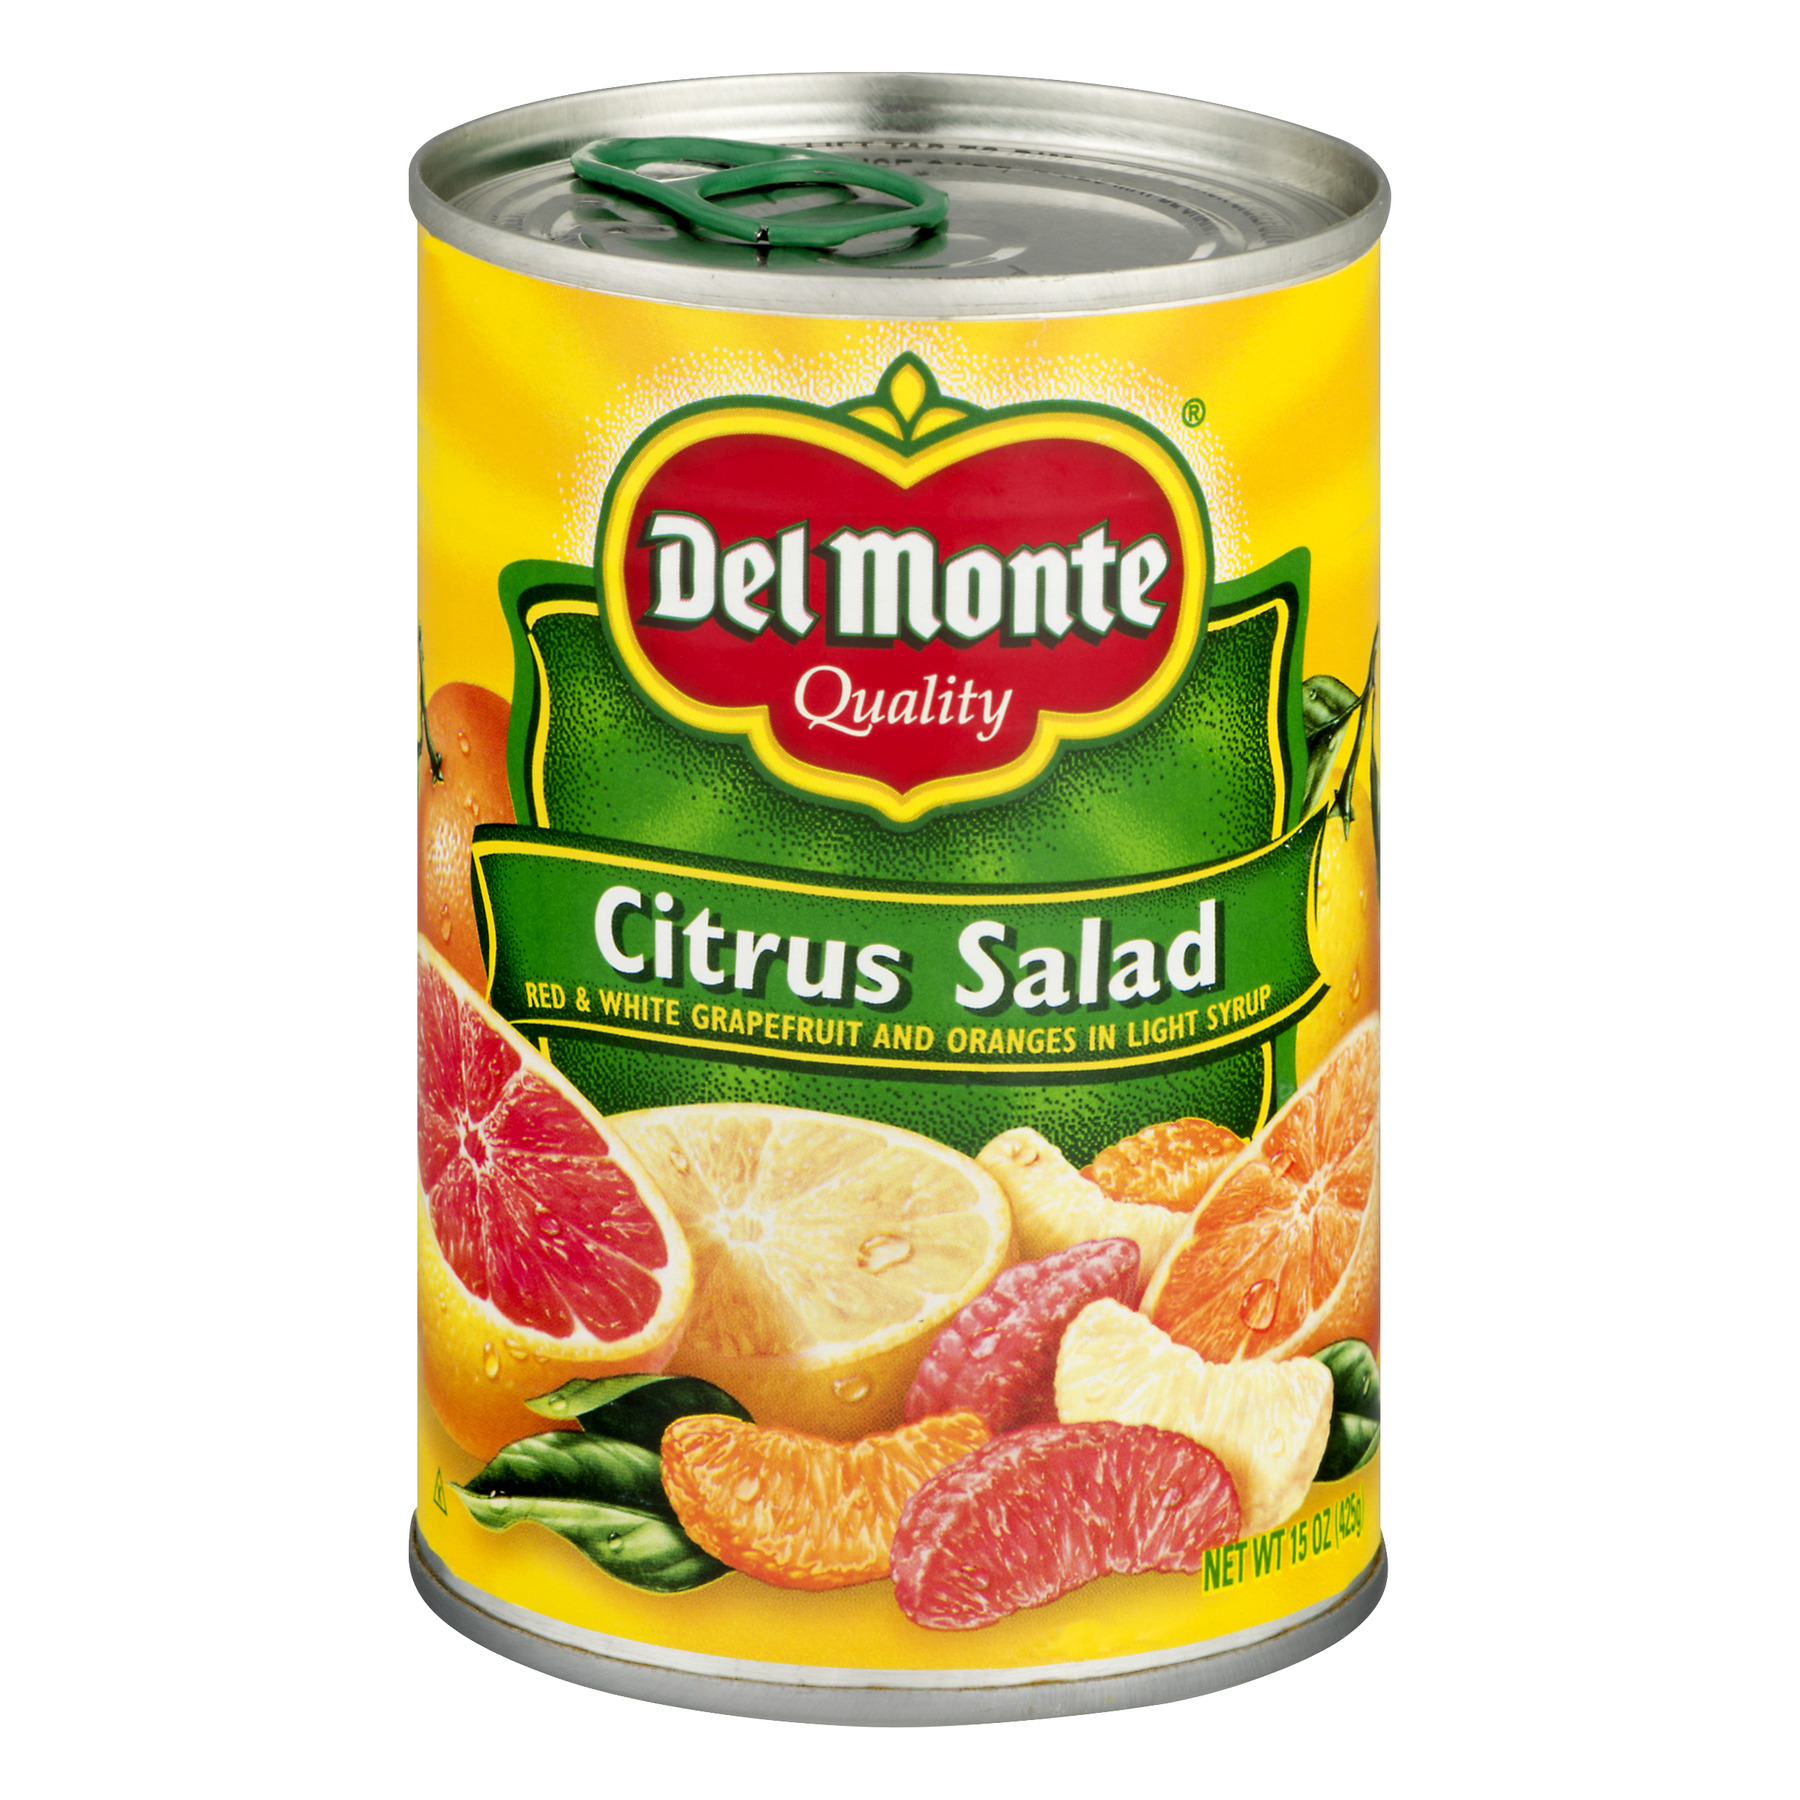 Del Monte Orange Se ctions & Red White Grapefruit In Light Citrus Salad, 15 oz by Del Monte Foods